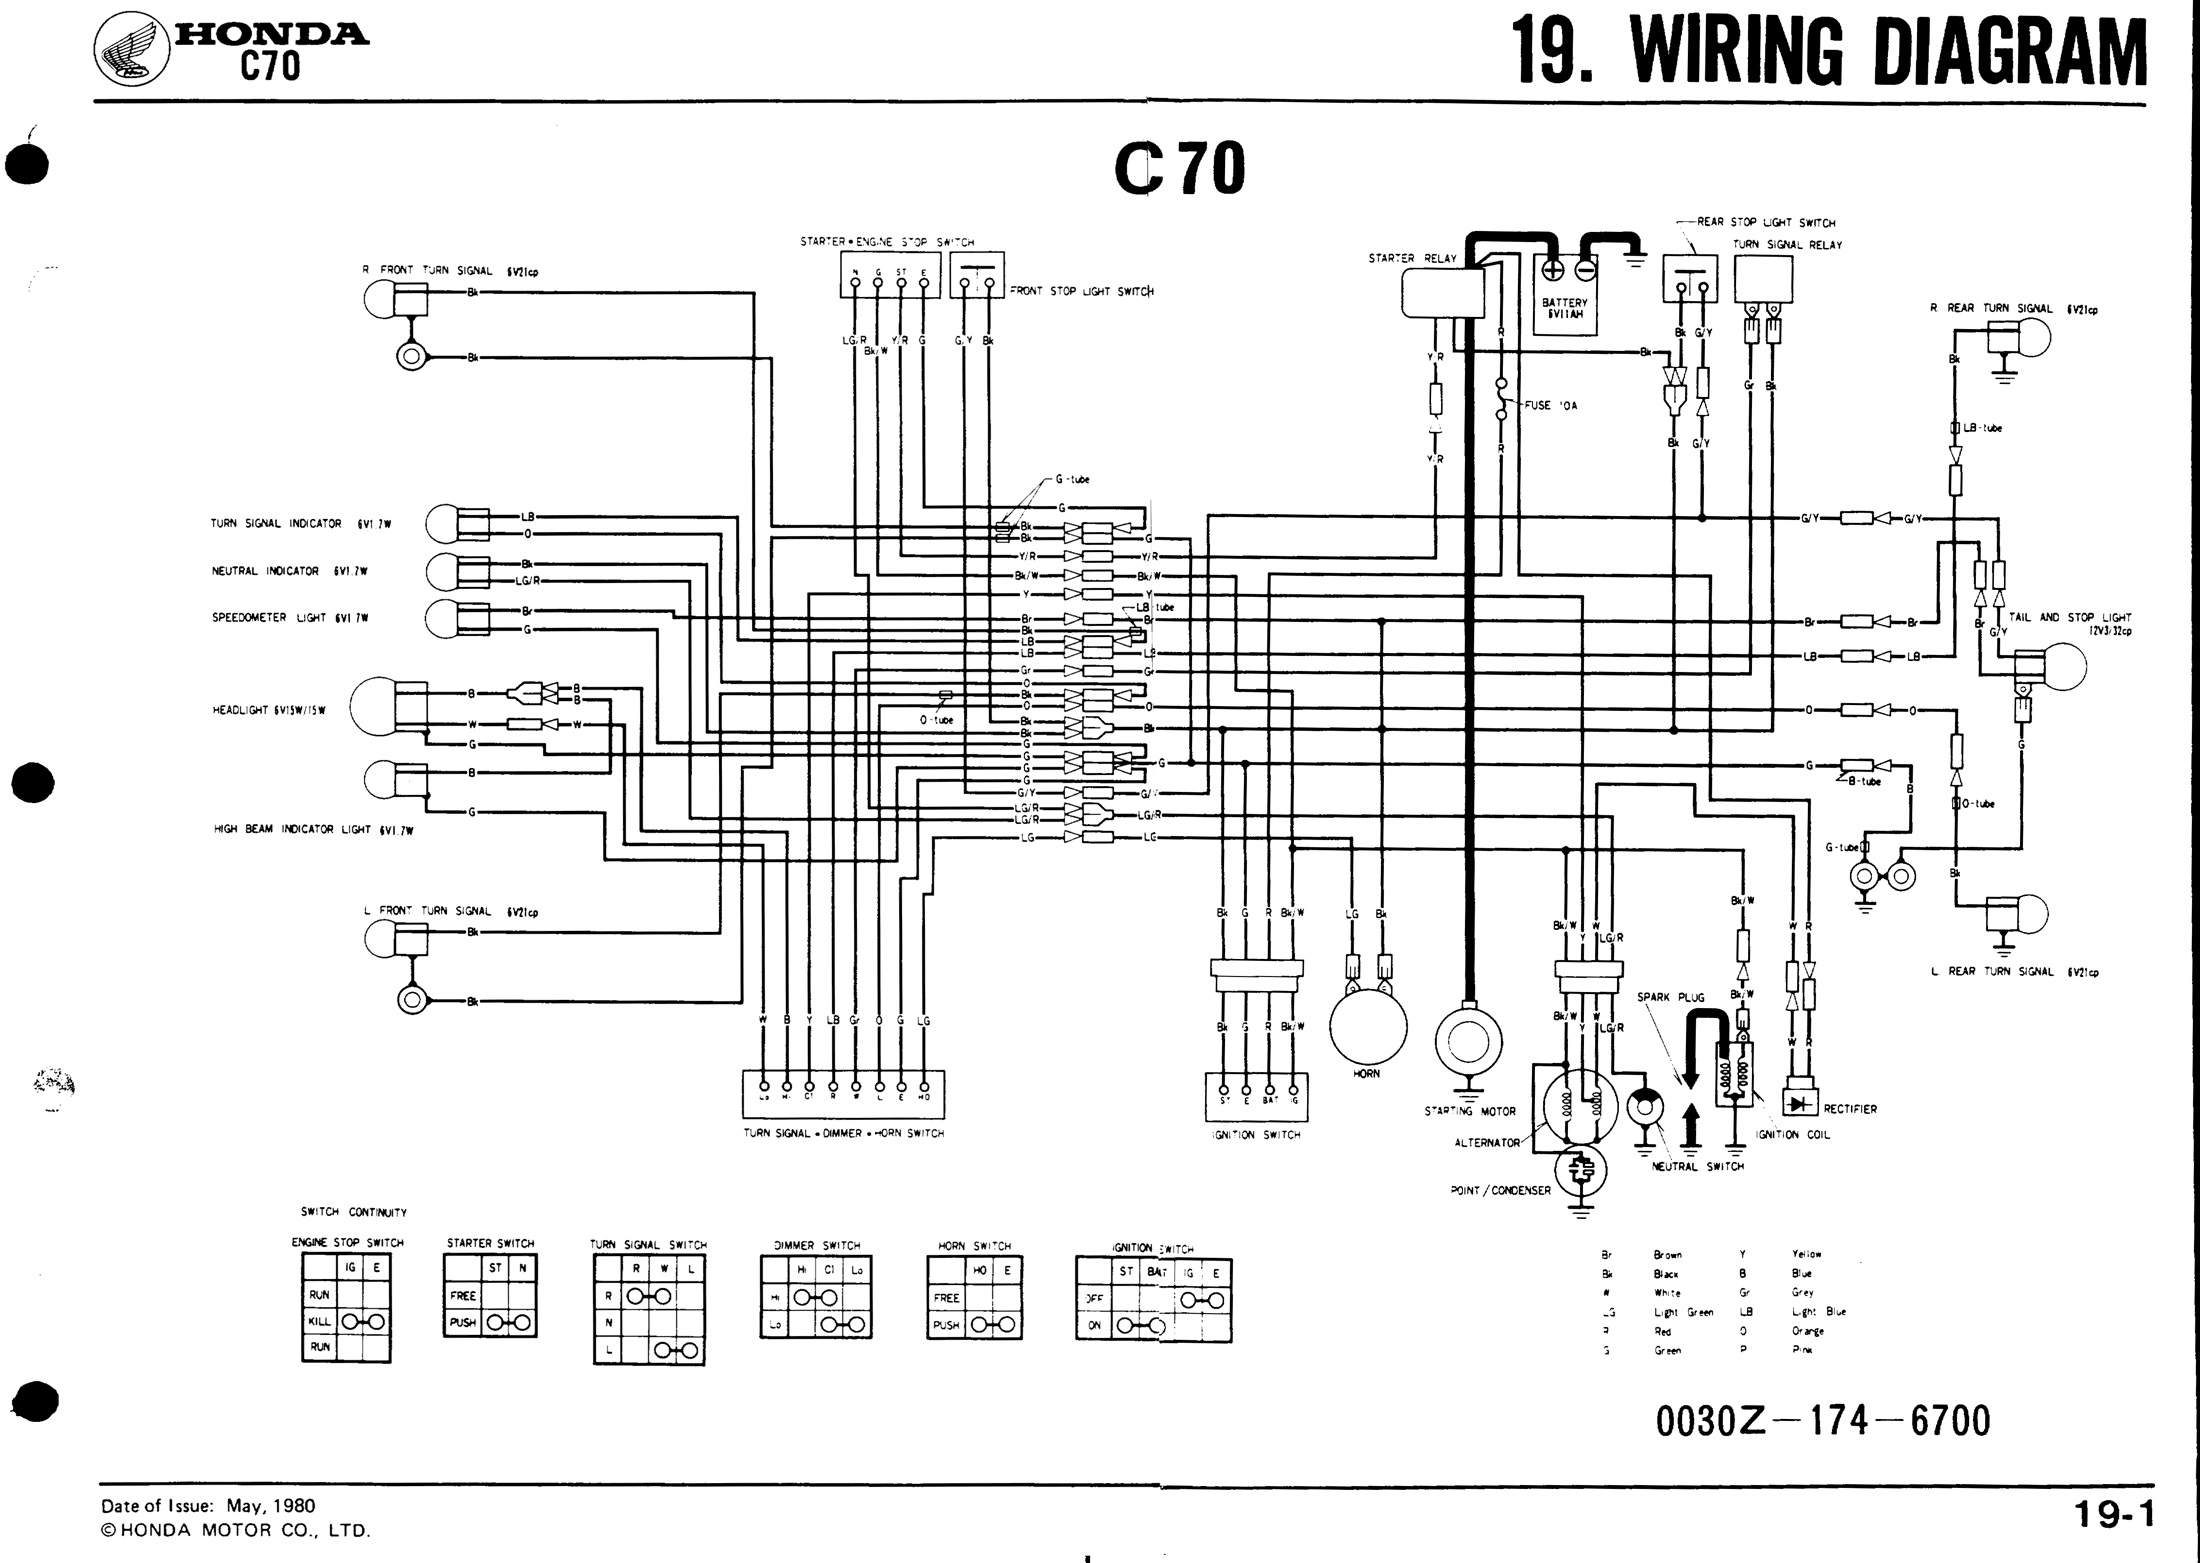 1994 Corvette Wiring Diagram Corvette Wiring Diagrams For Diy With Regard To 1970 Chevy Truck Parts Diagram moreover 1993 Saturn Sc2 Wiring Diagram Saturn Sc2 Engine Diagram 2001 With 2001 Chevy Tahoe Engine Diagram also 4 Wire O2 Sensor Wiring Diagram Honda besides Geo Tracker Wiring Diagram Also 1992 Metro On in addition 1971 Chevy Truck Ignition Switch Wiring Diagram. on chevy engine diagrams free